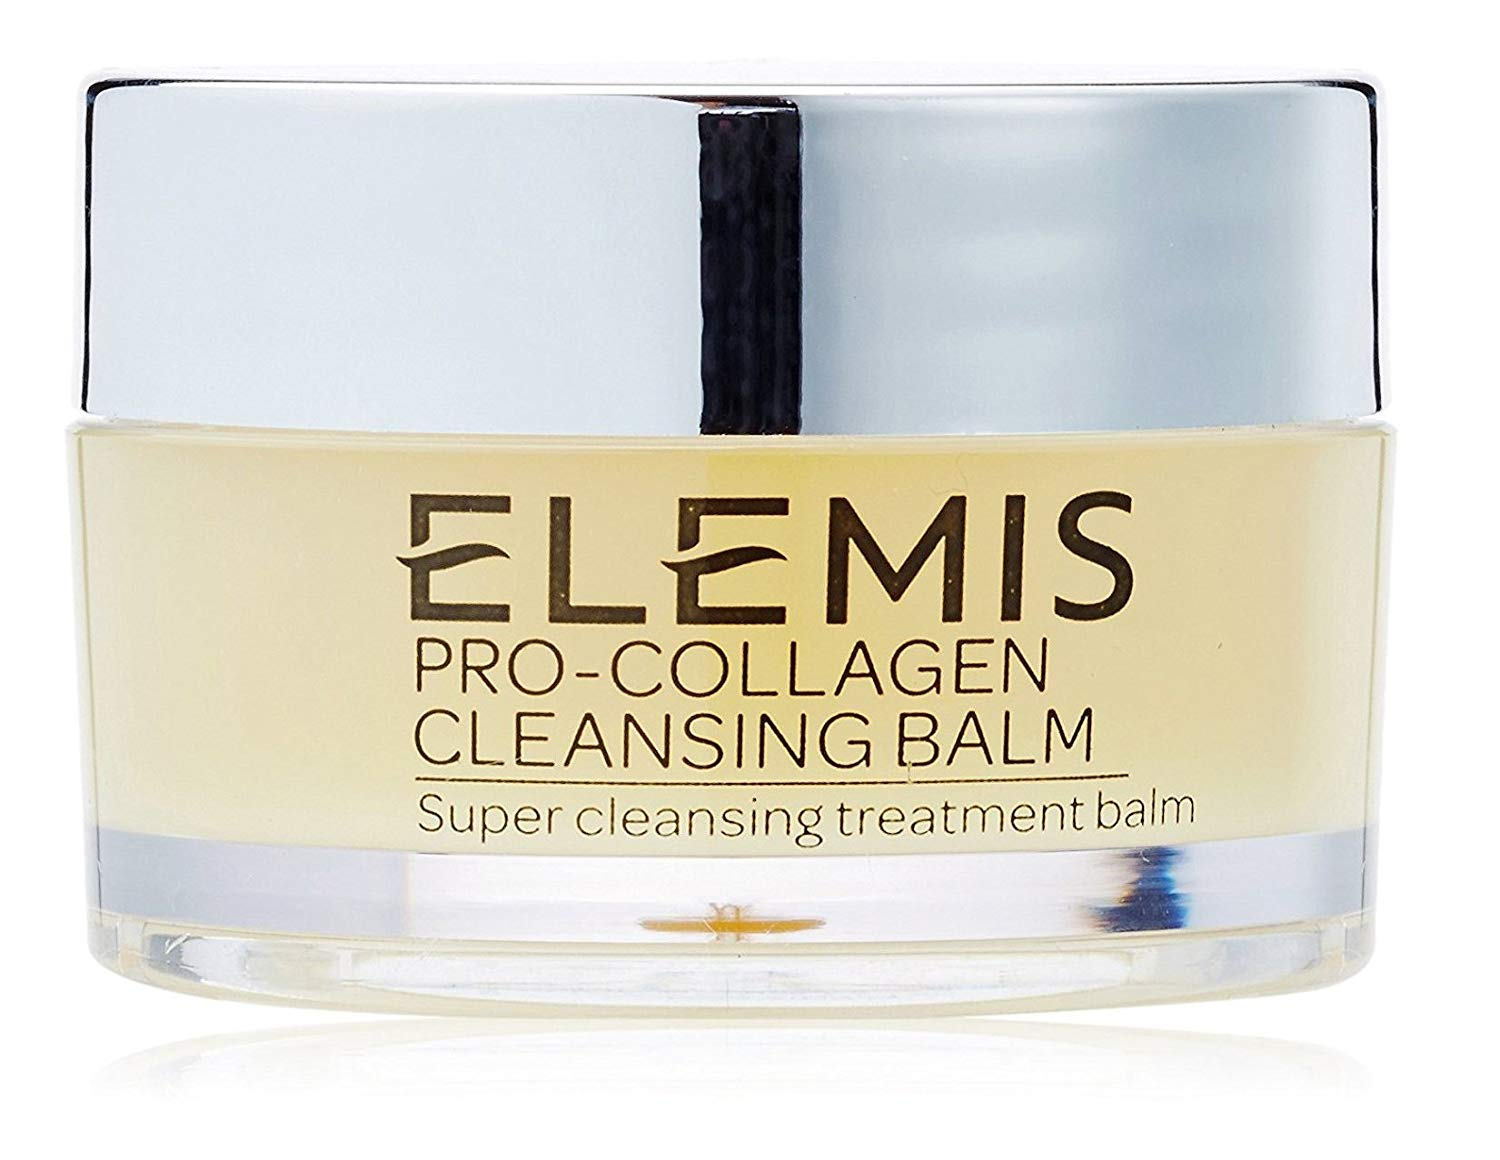 Elemis Pro-Collagen Cleansing Balm – Super Cleansing Treatment Balm